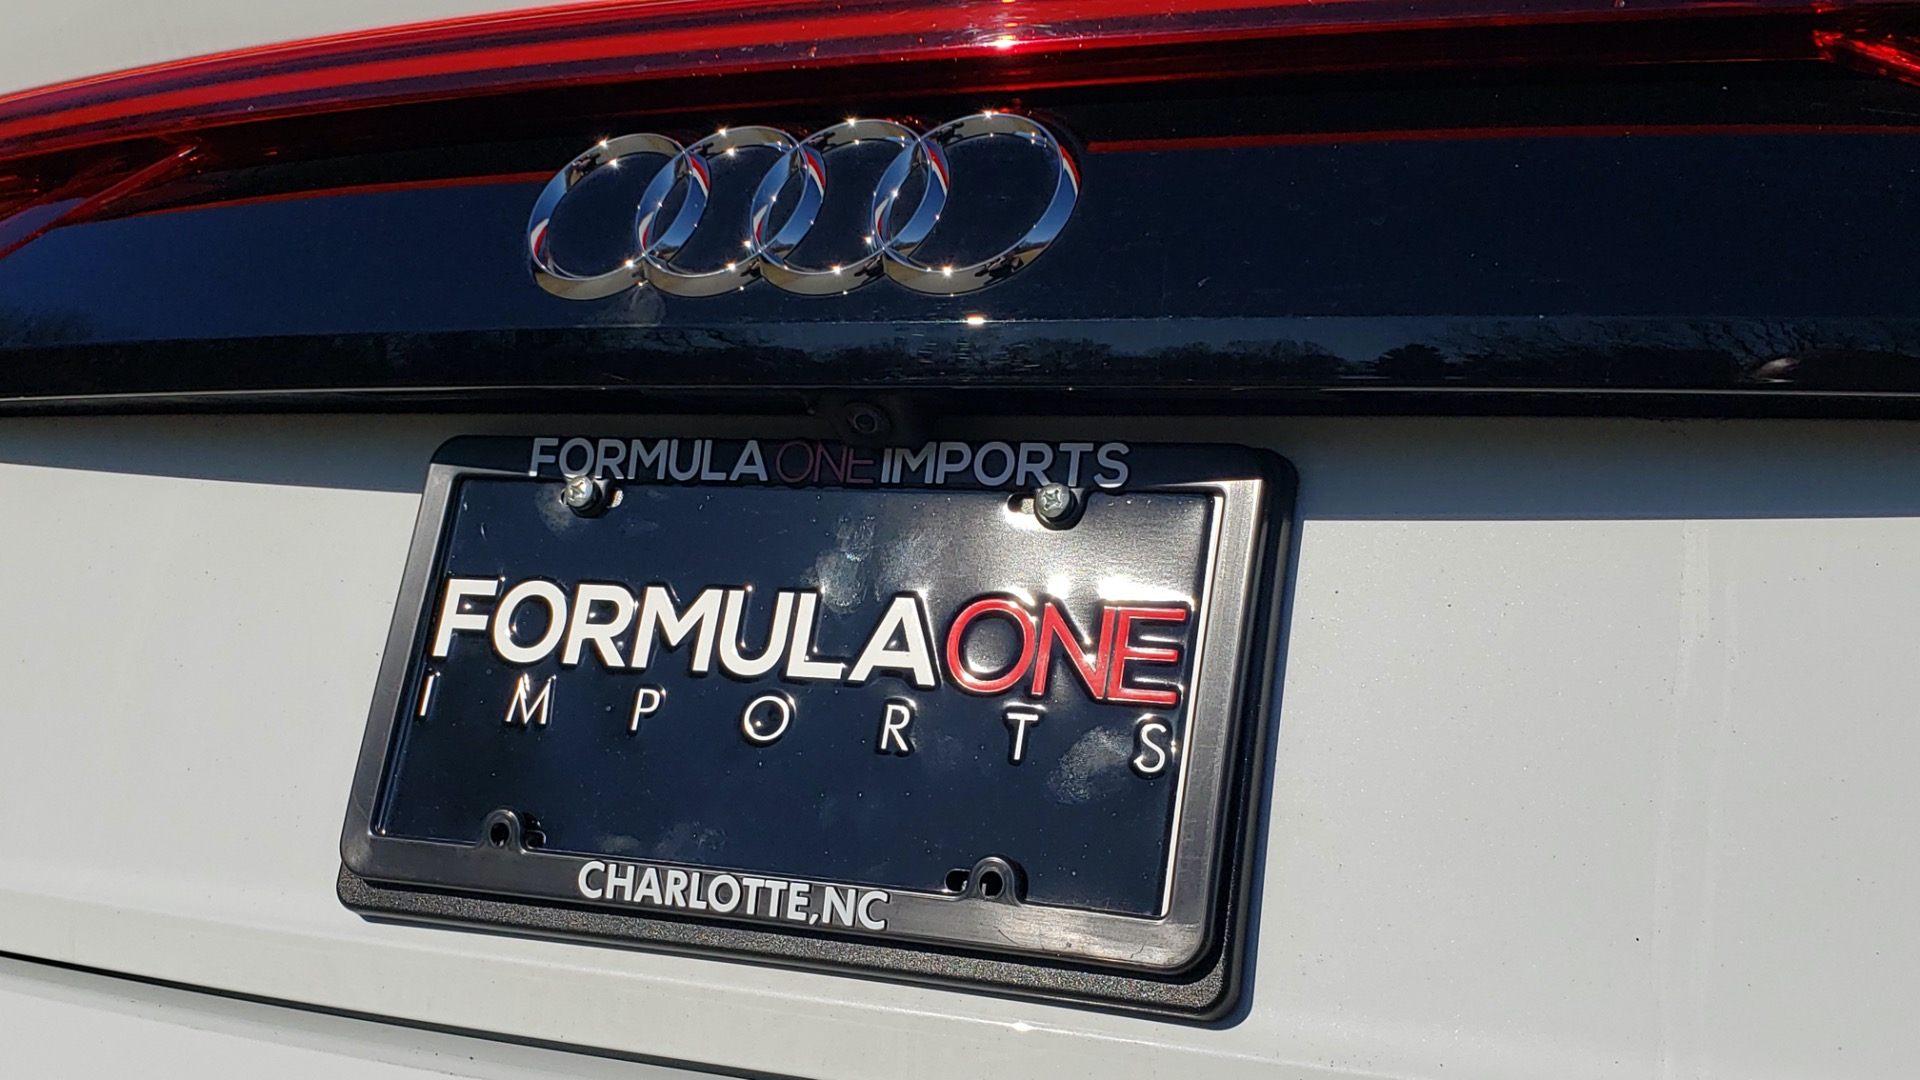 Used 2019 Audi Q8 PRESTIGE S-LINE / LUX PKG / ADAPT CHASSIS / YEAR ONE / CLD WTHR for sale Sold at Formula Imports in Charlotte NC 28227 35